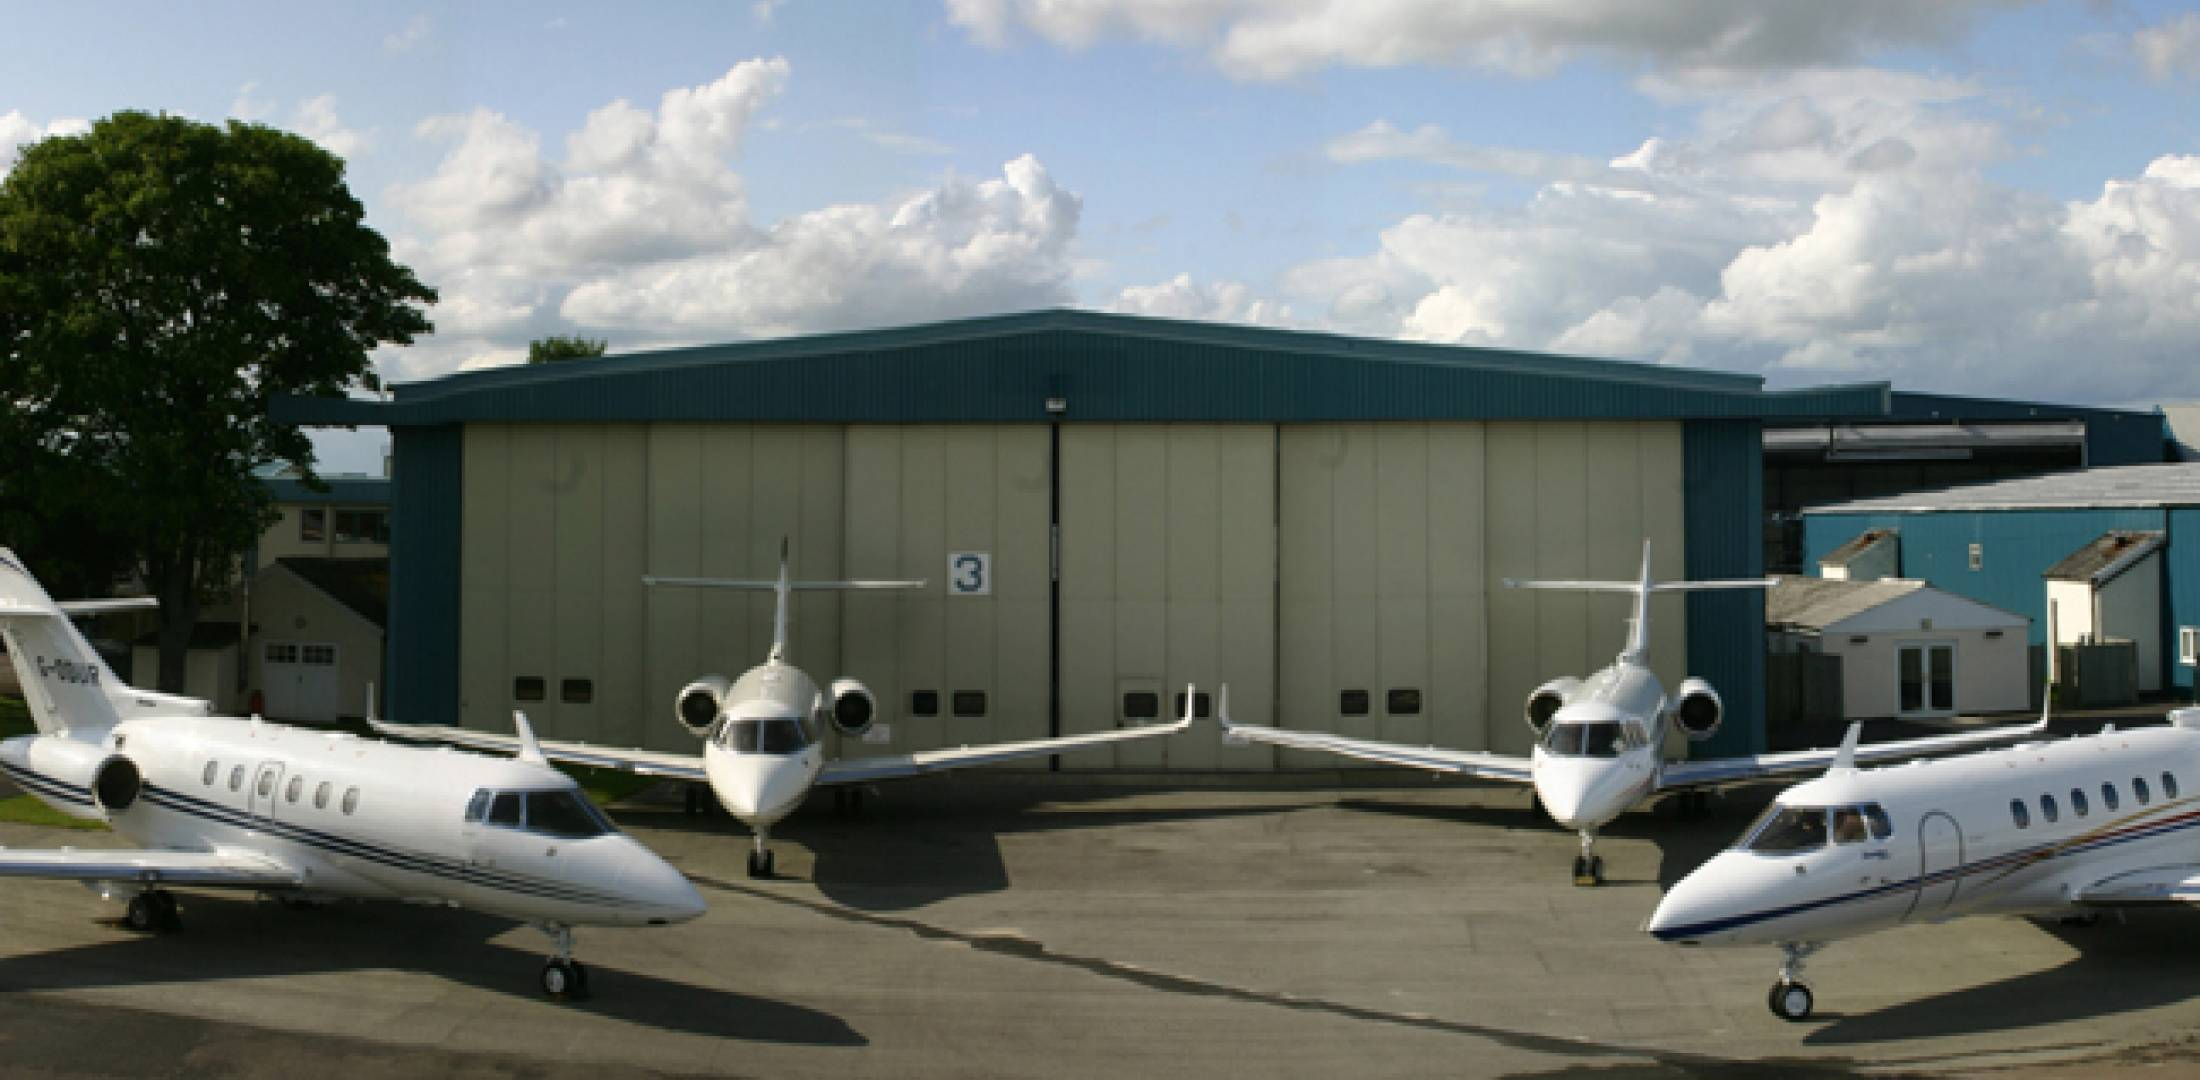 company Hangar8 has enhanced the support capabilities at its Oxford, UK, MRO facility to cover a broader range of business aircraft.